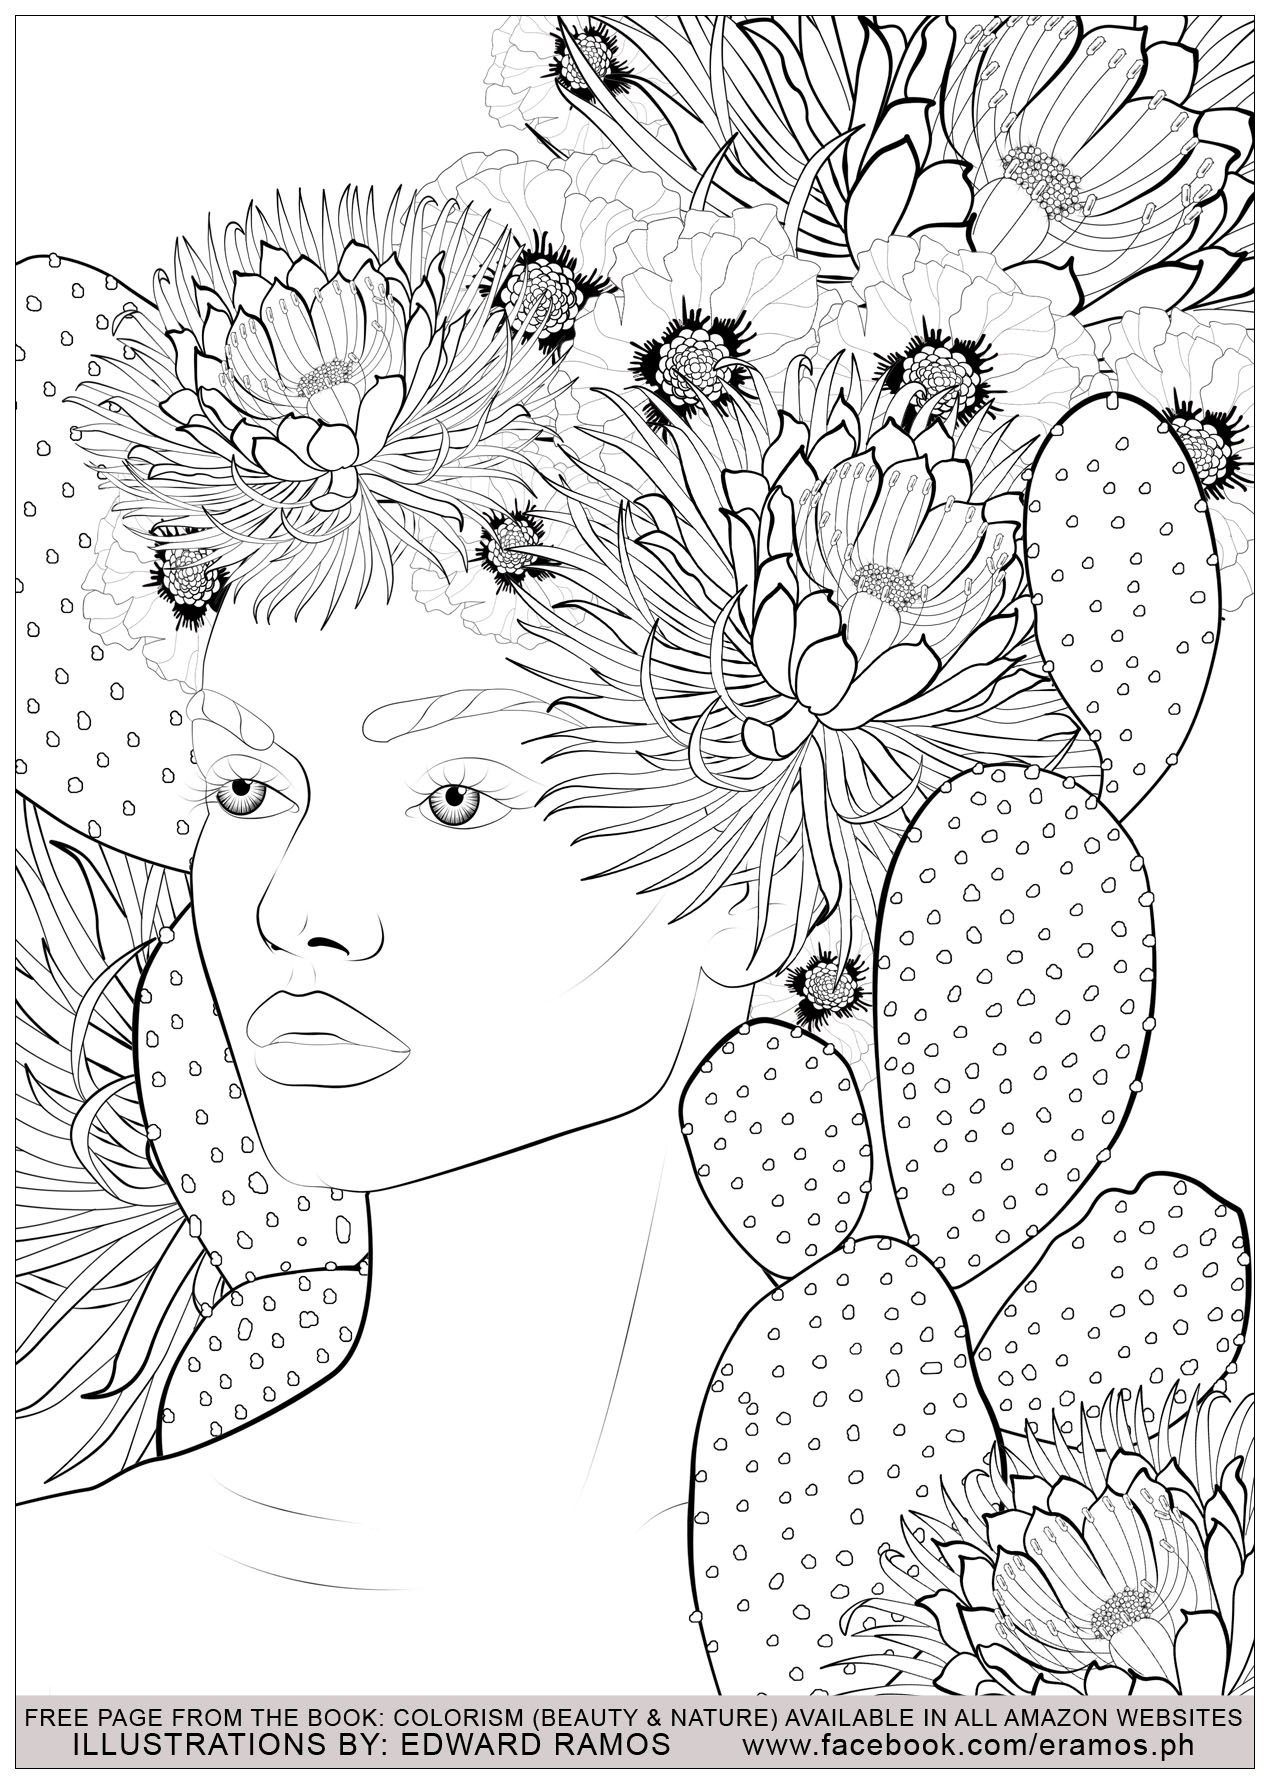 Illustration from the book Colorism - Beauty & Nature by Edward Ramos - 13